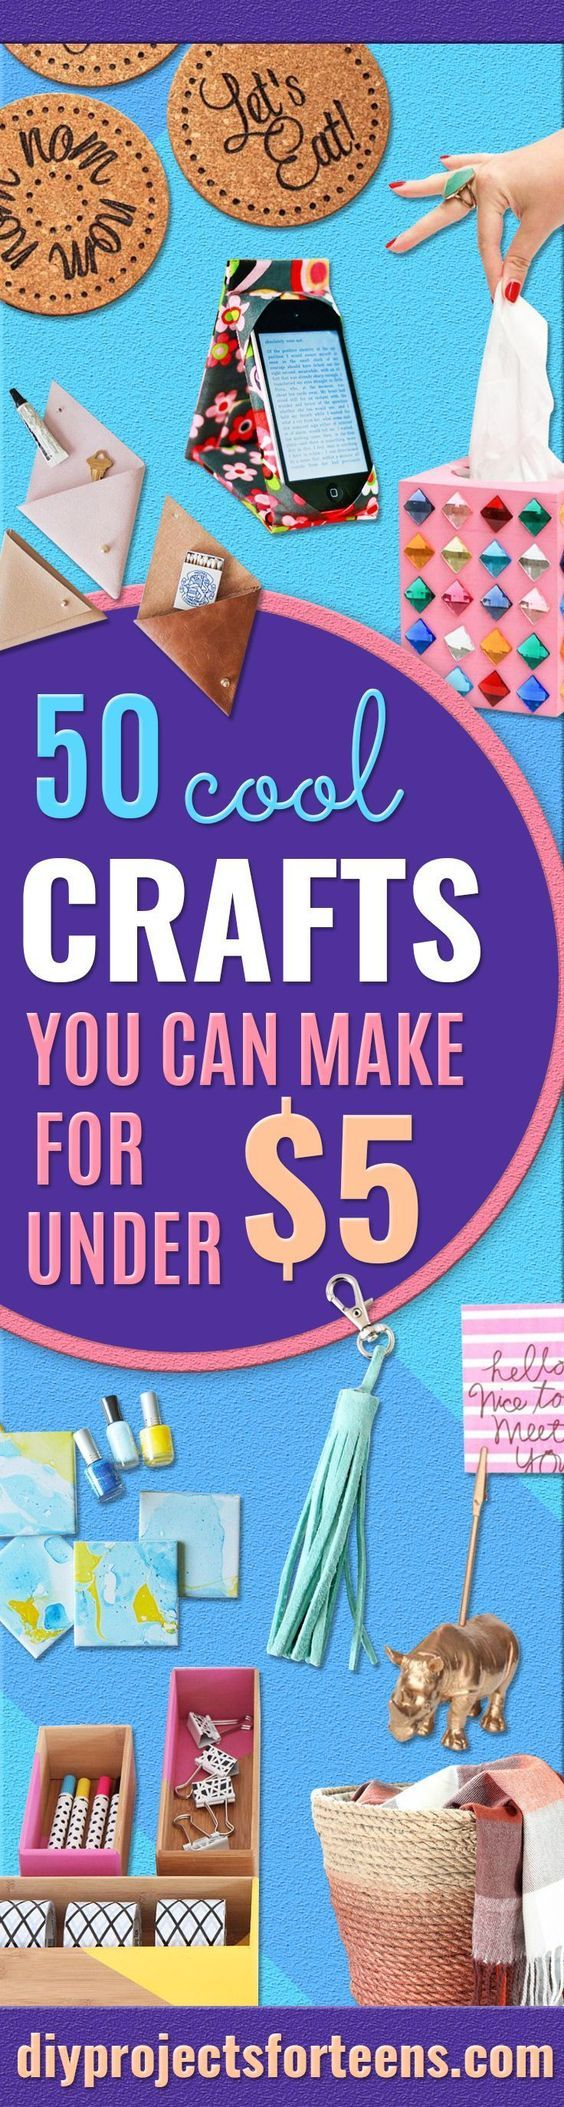 Cheap Crafts for Teens - Inexpensive DIY Projects for Teenagers and Tweens - Cute Room Decor, School Supplies, Accessories and Clothing You Can Make On A Budget - Fun Dollar Store Crafts - Cool DIY Gift Ideas for Christmas, Birthdays, BFF gifts and more -